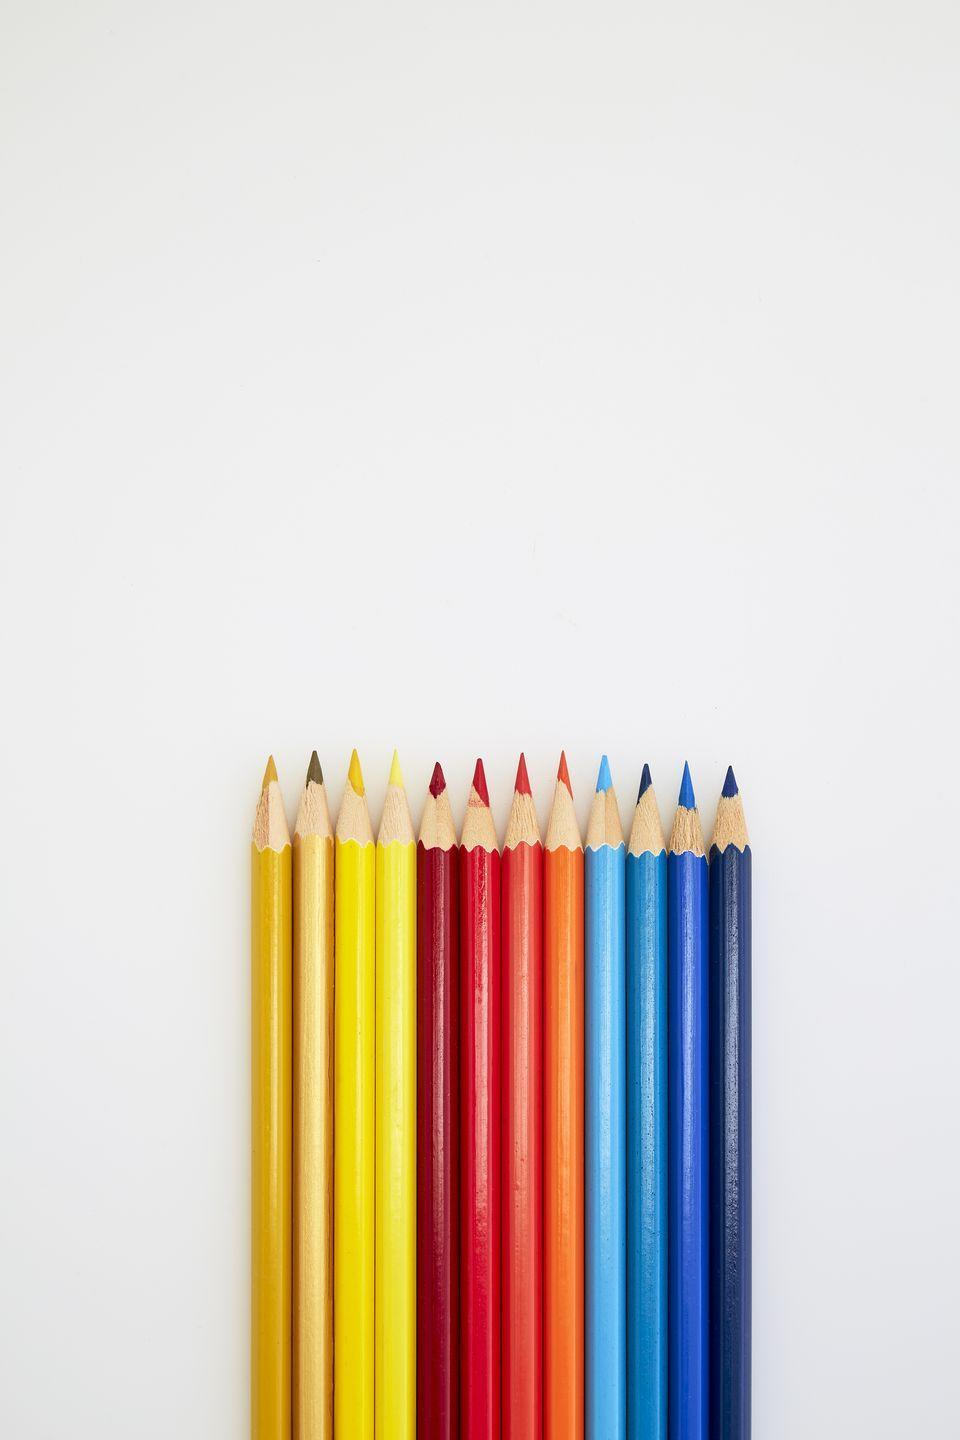 """<p>There's plenty of <a href=""""https://www.psychologytoday.com/us/blog/modern-mentality/201803/are-adult-coloring-books-actually-helpful"""" rel=""""nofollow noopener"""" target=""""_blank"""" data-ylk=""""slk:evidence"""" class=""""link rapid-noclick-resp"""">evidence</a> that <a href=""""https://www.oprahmag.com/life/g28640347/best-adult-coloring-books/"""" rel=""""nofollow noopener"""" target=""""_blank"""" data-ylk=""""slk:adult coloring books"""" class=""""link rapid-noclick-resp"""">adult coloring books</a> can help you cope with stress and anxiety, plus... have you seen those designs? They take time to complete. Another worthy option? A paint-by-numbers masterpiece <a href=""""https://www.oprahmag.com/life/g29724914/oprah-favorite-things-2019-gallery/"""" rel=""""nofollow noopener"""" target=""""_blank"""" data-ylk=""""slk:recommended by Oprah herself"""" class=""""link rapid-noclick-resp"""">recommended by Oprah herself</a>. </p><p><a class=""""link rapid-noclick-resp"""" href=""""https://www.amazon.com/dp/B07YCX3T9C?linkCode=xm2&tag=syn-yahoo-20&ascsubtag=%5Bartid%7C10072.g.31703166%5Bsrc%7Cyahoo-us"""" rel=""""nofollow noopener"""" target=""""_blank"""" data-ylk=""""slk:SHOP PAINT BY NUMBERS KIT"""">SHOP PAINT BY NUMBERS KIT</a><br></p>"""